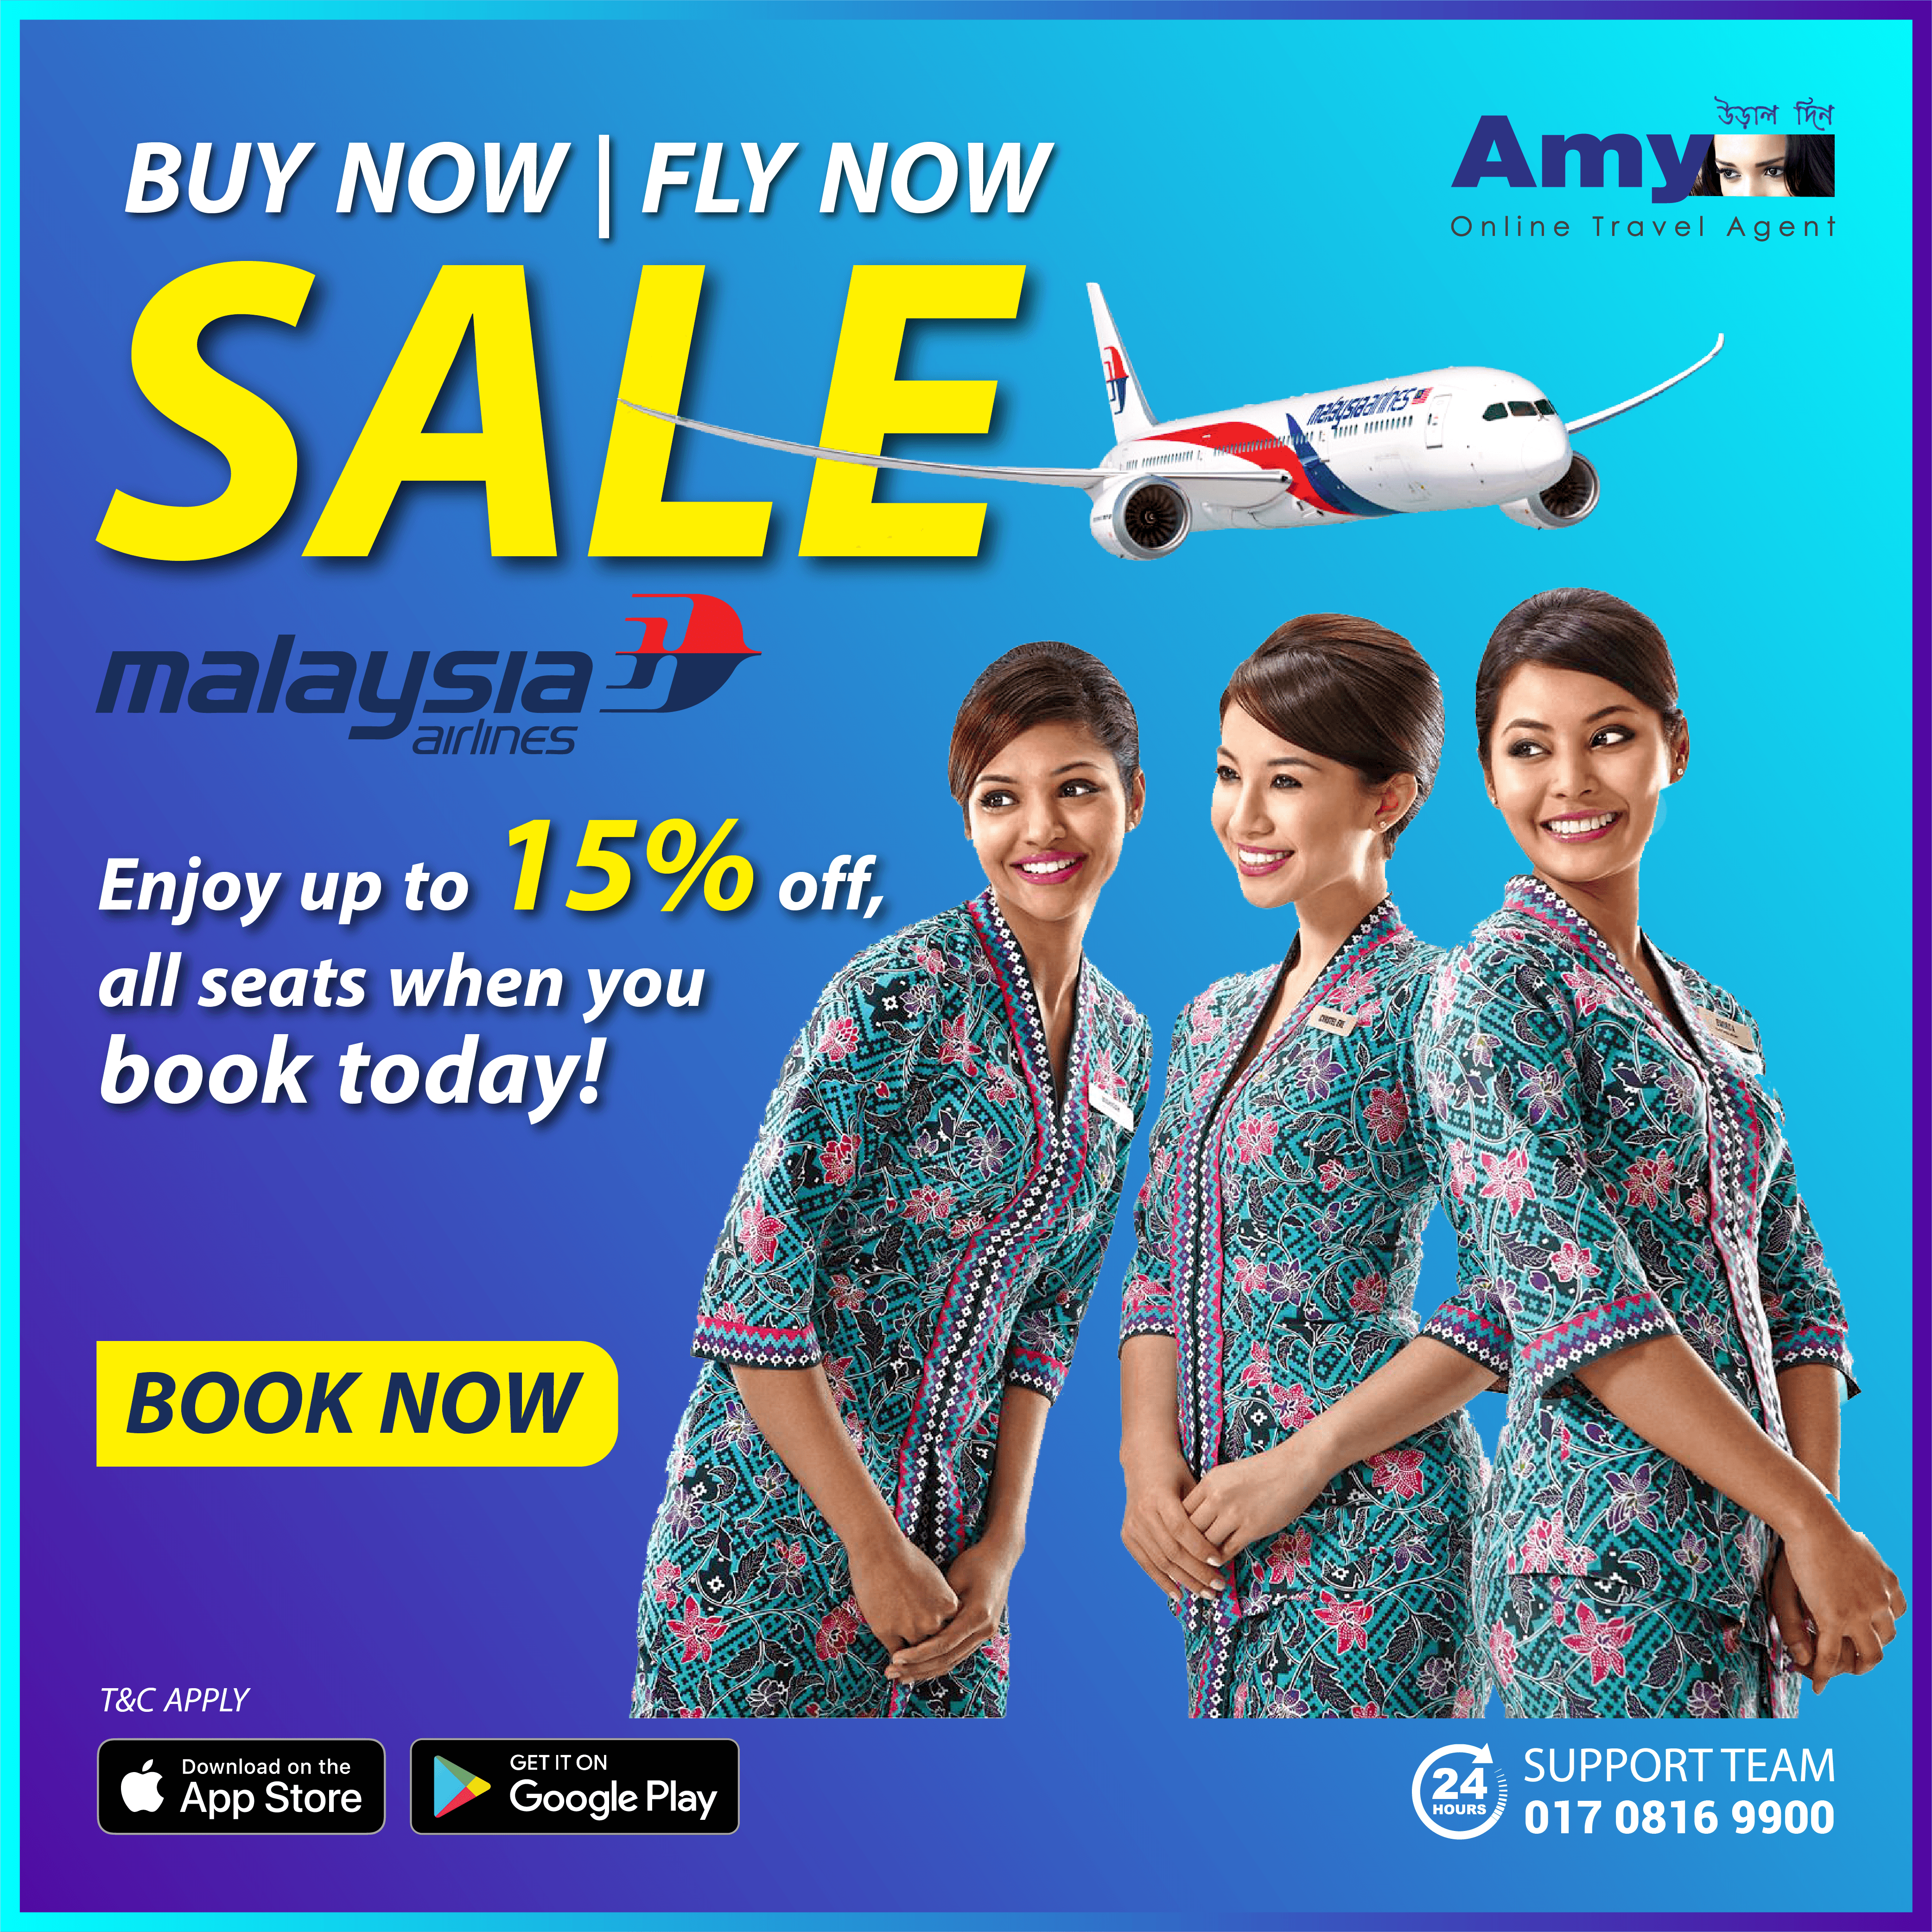 Up to 15% off all seats when you book today!  Enjoy up to 15% off all seats on all flights for only 24 hours and whisk off from Dhaka to ANY destination on the entire Malaysia Airlines network!  Sales period: Now until 26 Jan 2020 Travel period: Now until 31 Dec 2020  #Sale #Discount #Offer #Flights #CheapAirTicket #MalaysiaAirlines #Amy